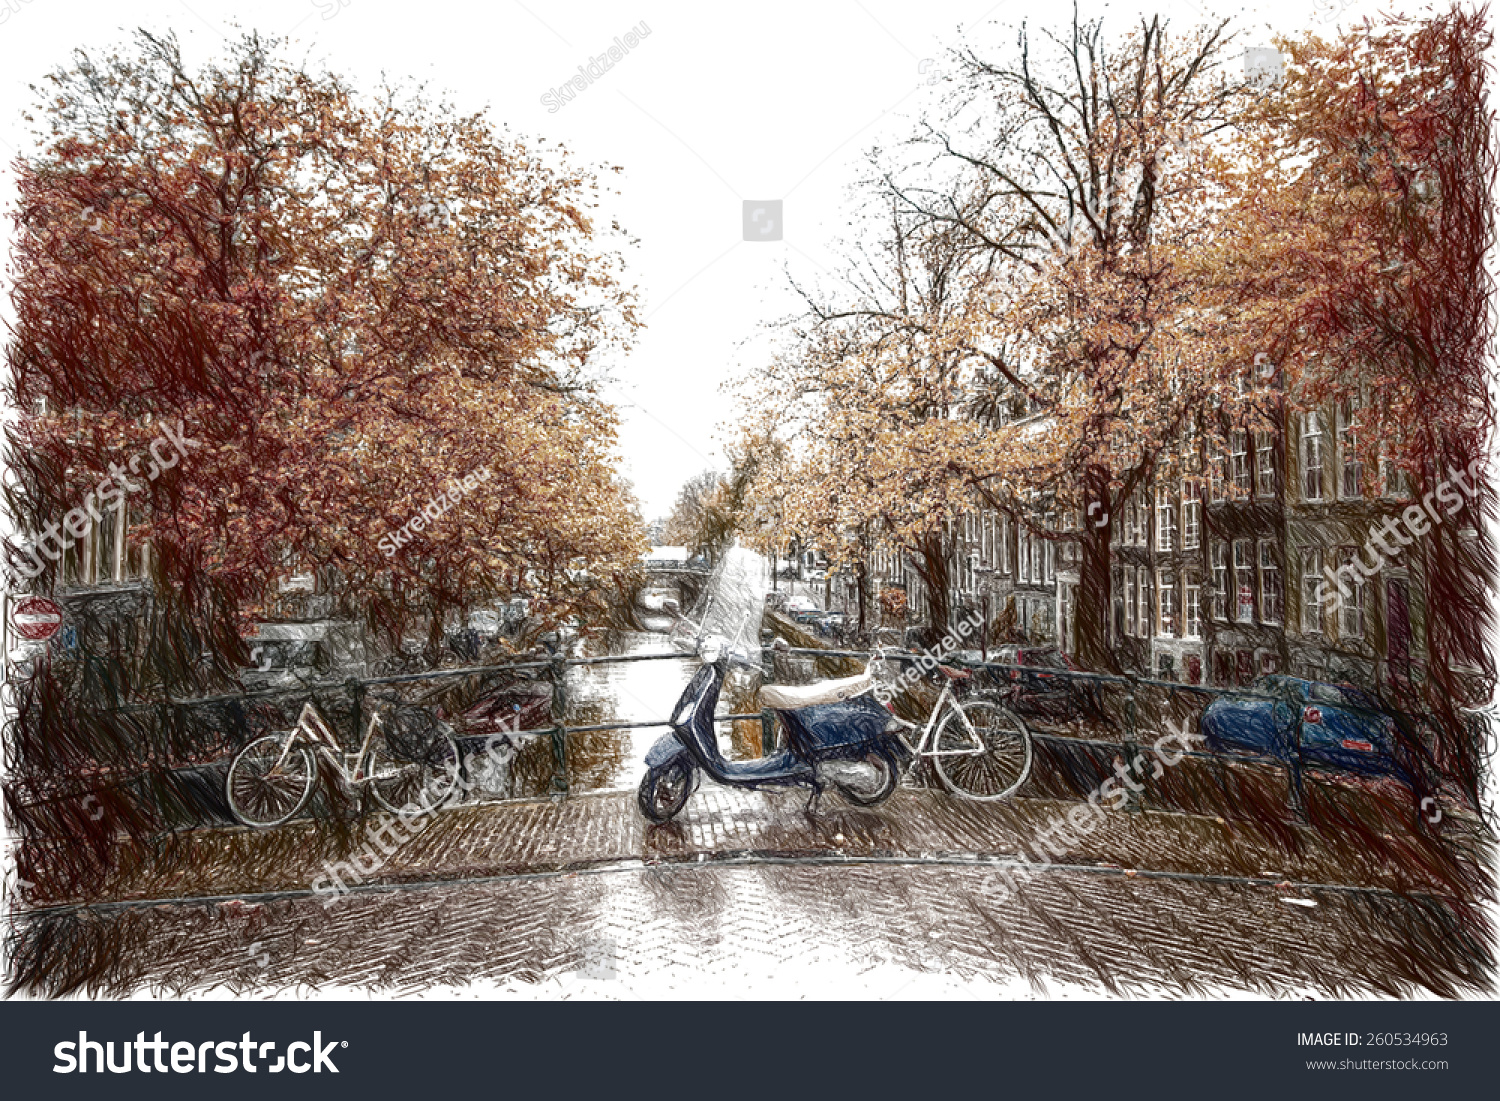 Amsterdam Autumn Beautiful Places In Europe Stock Photo 260534963 Shutterstock